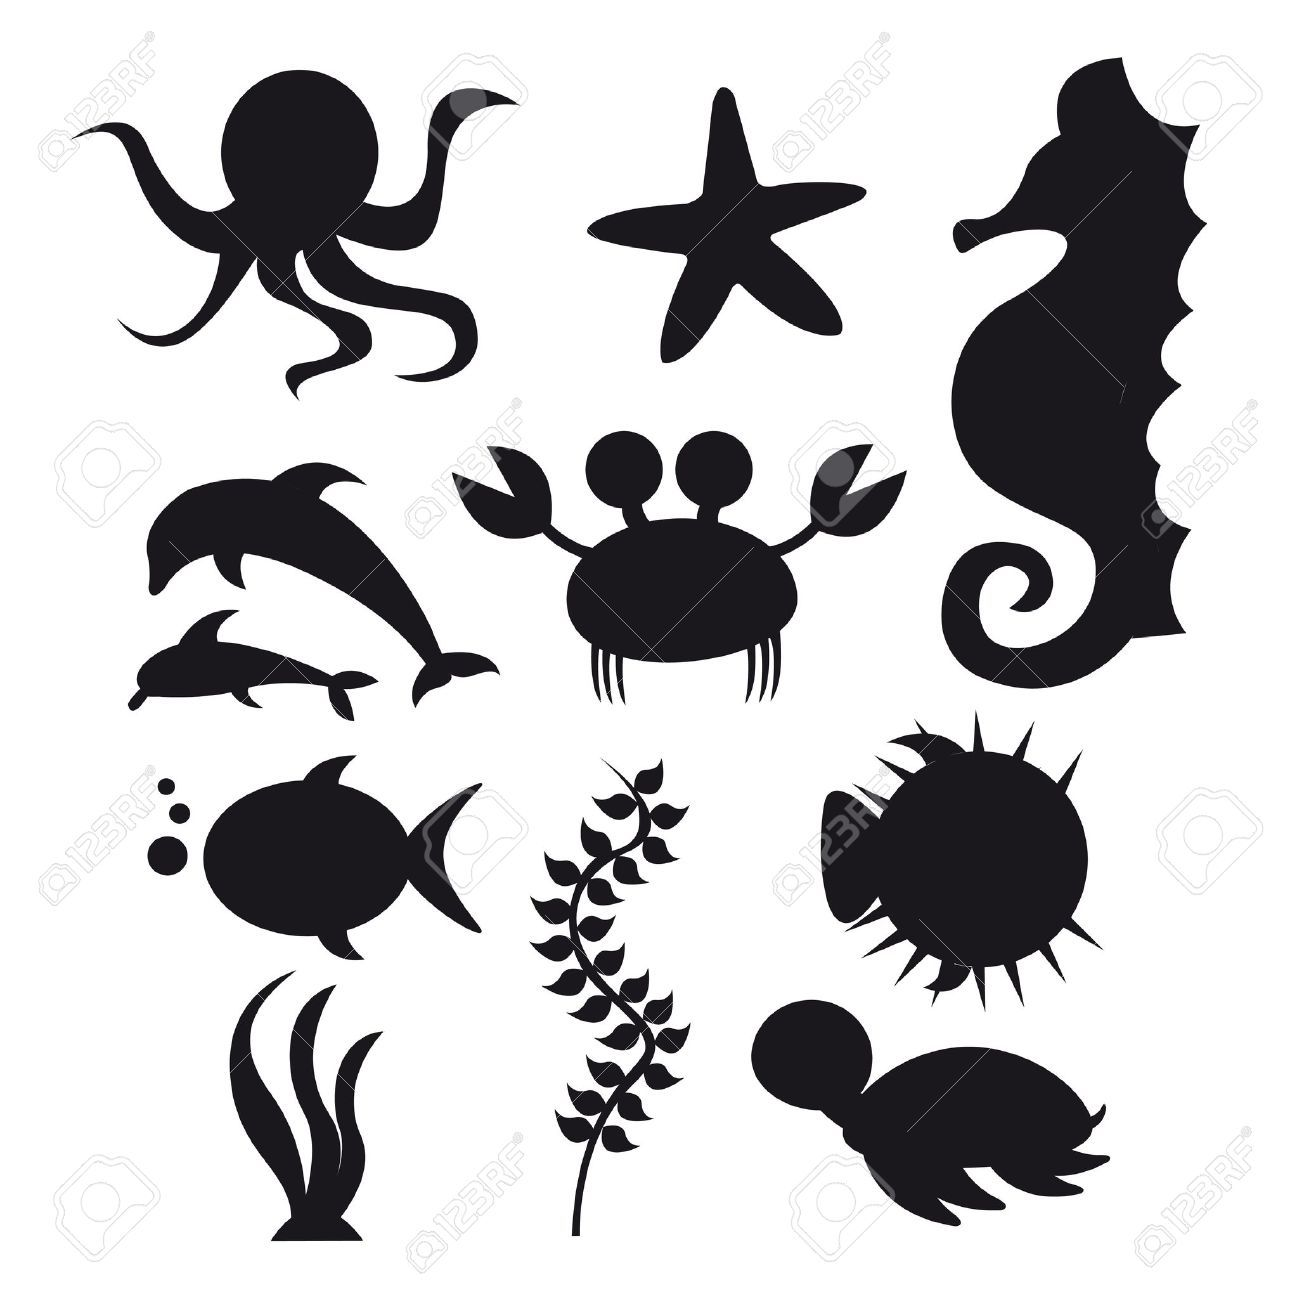 Under The Sea Silhouettes